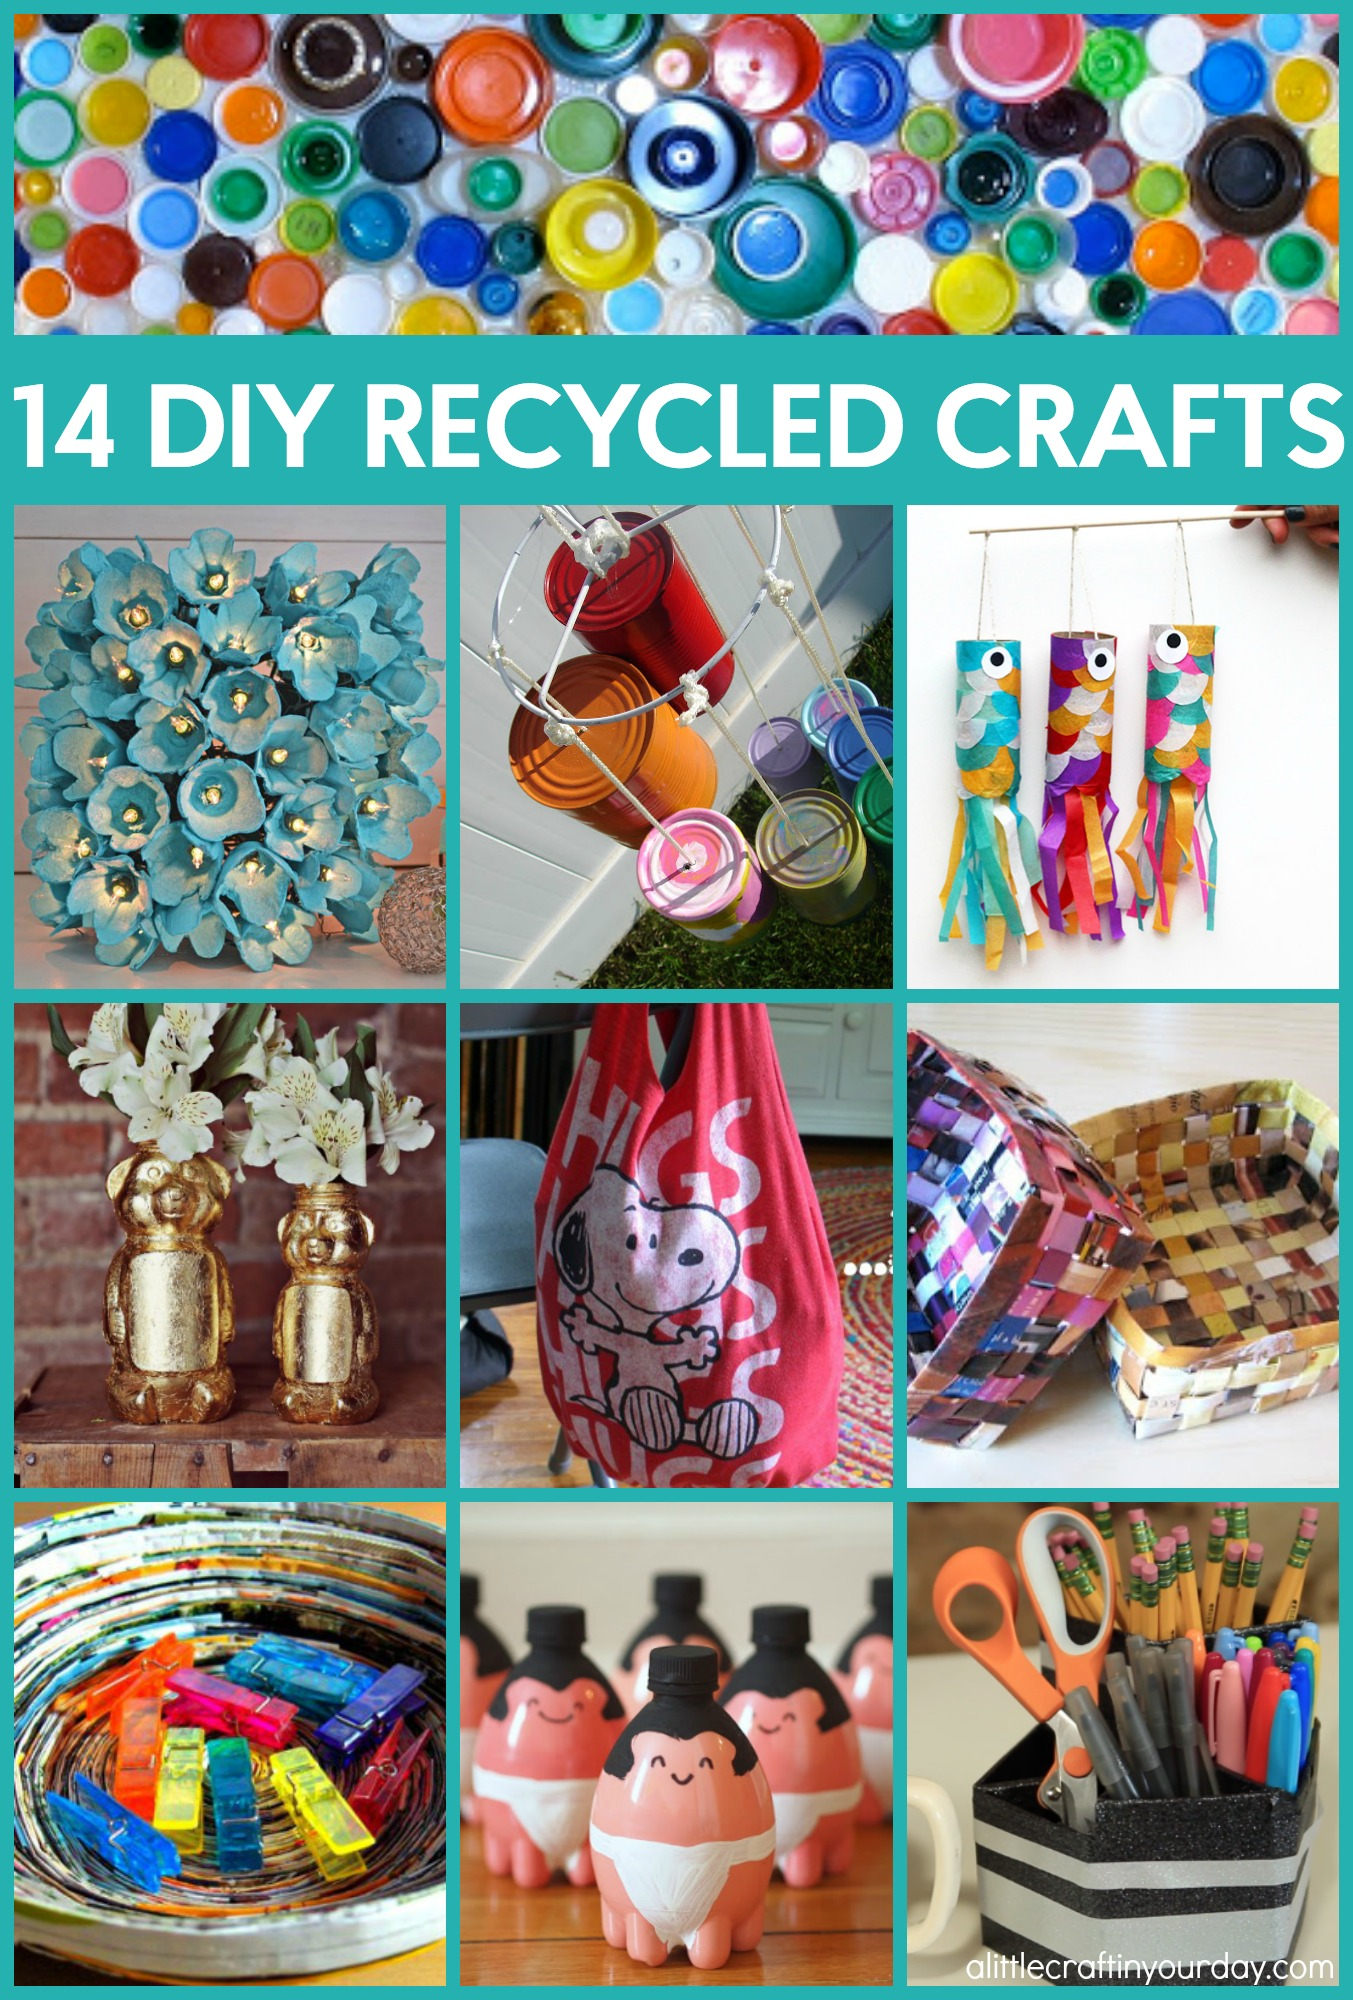 14 DIY Recycled Crafts That Will Help The Earth - A Little ...